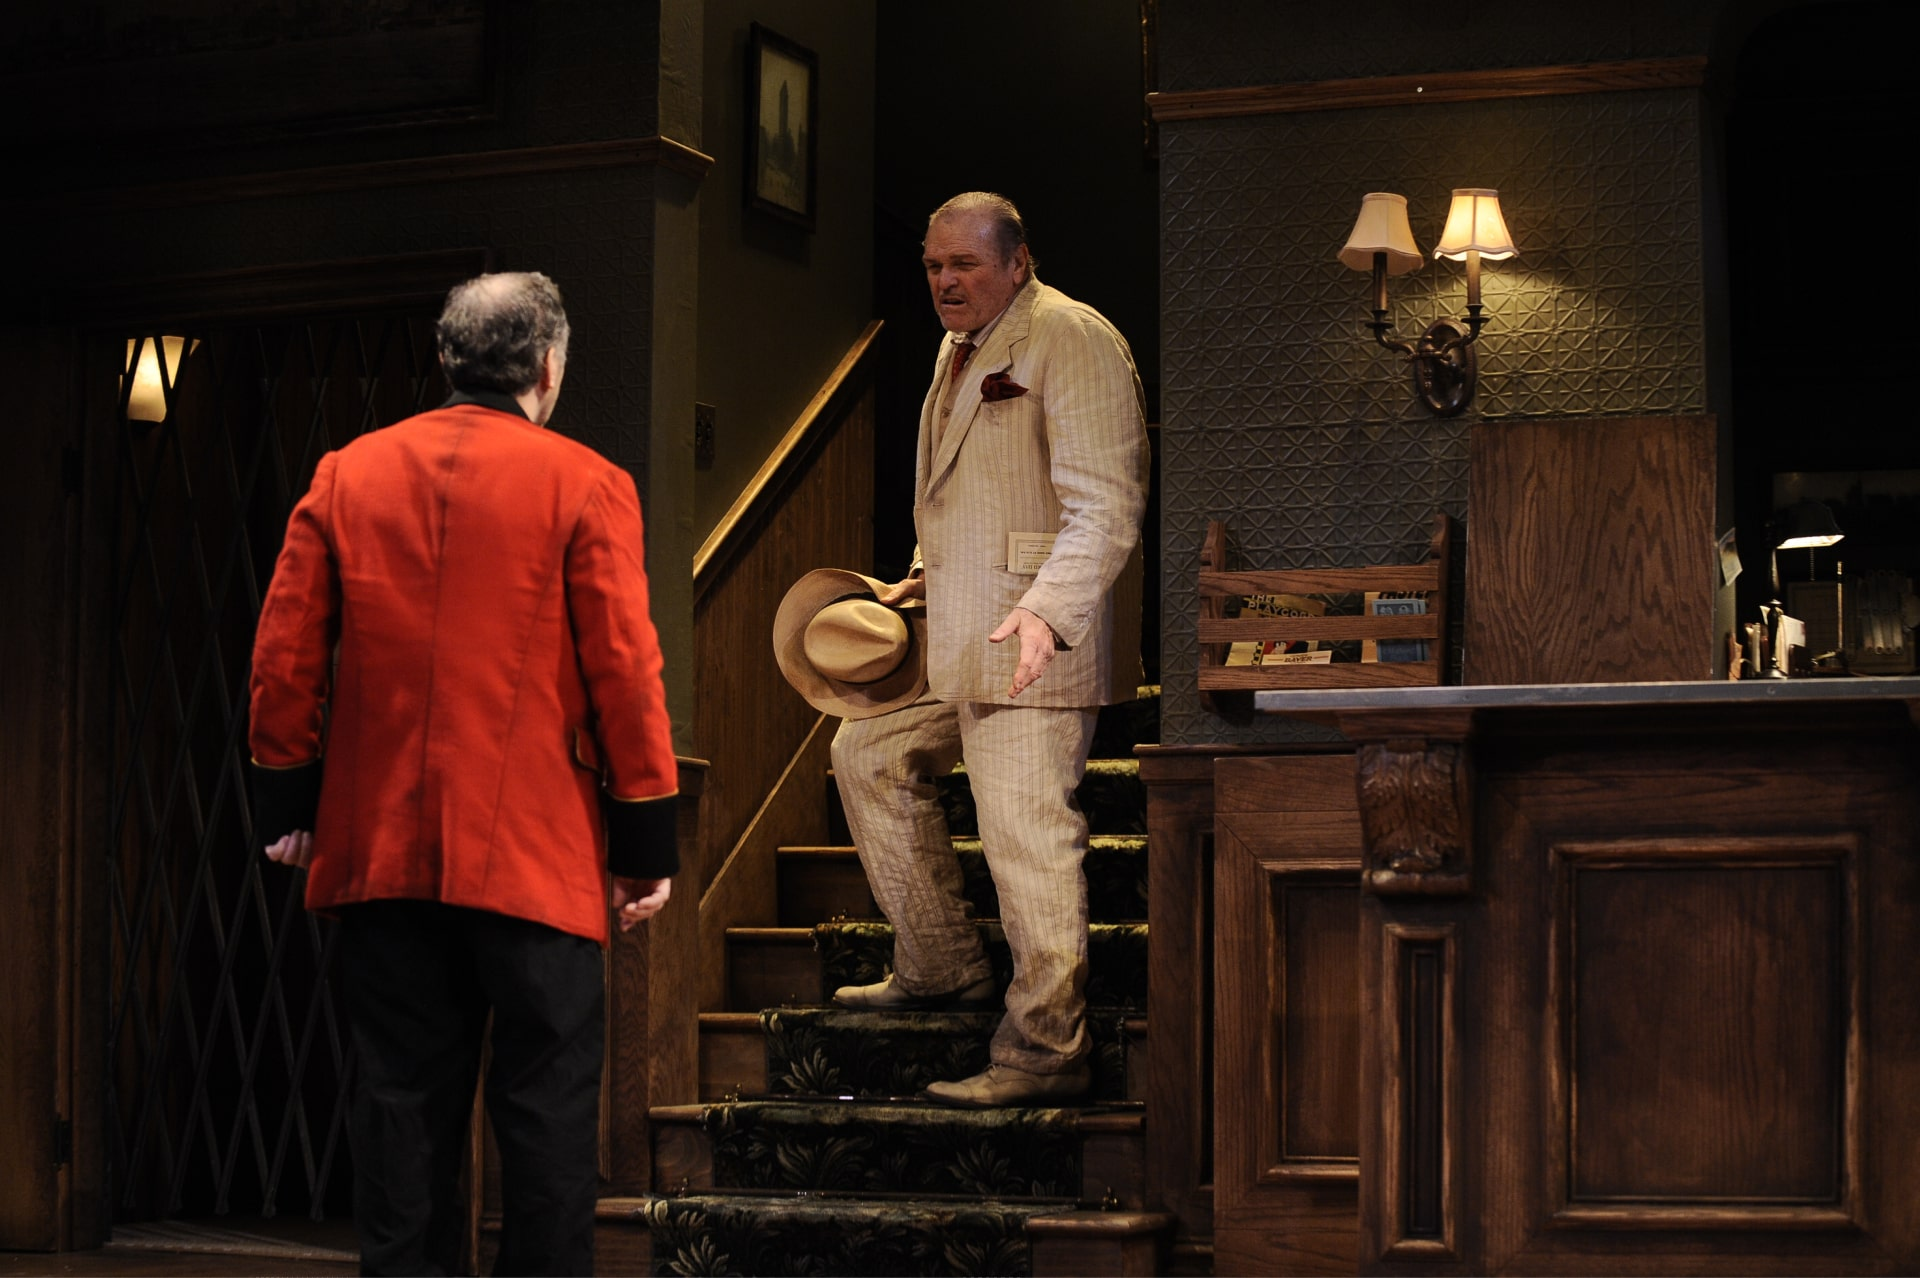 Dishevelled burly man in summer suit stands partway up hotel lobby stairs, speaking with red-suited desk clerk.